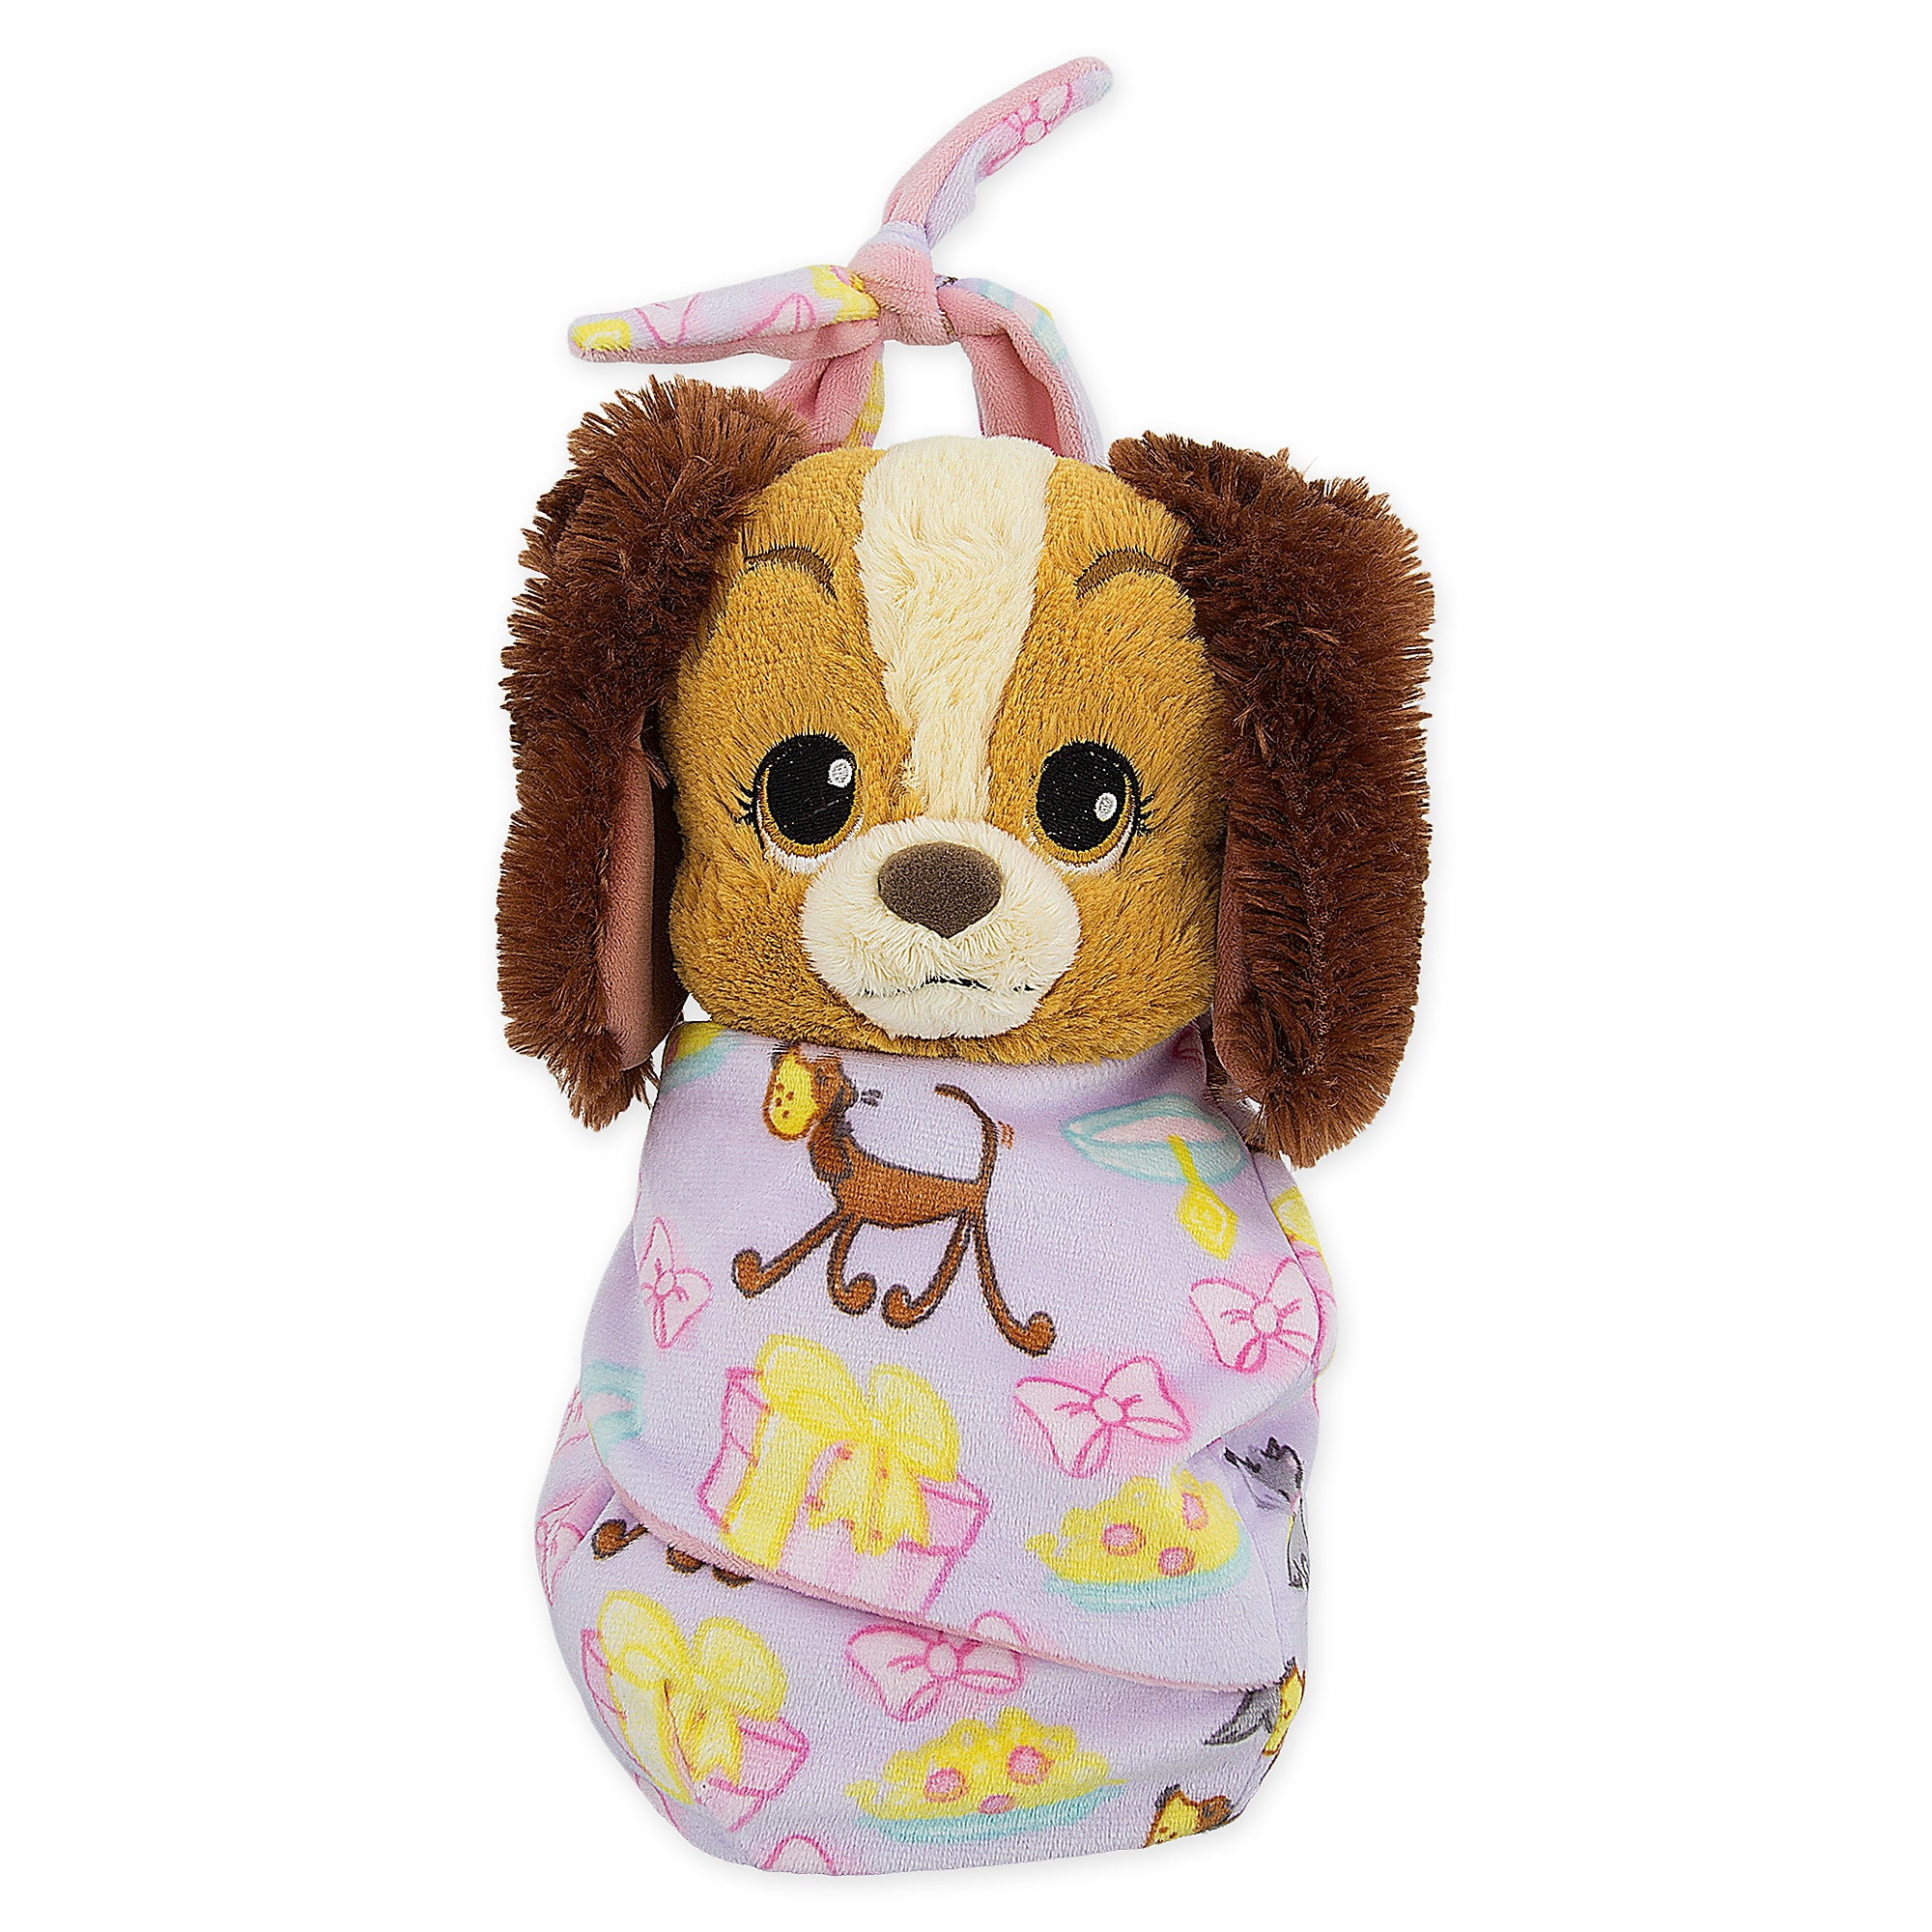 Lady Plush with Blanket Pouch - Disney's Babies - Small